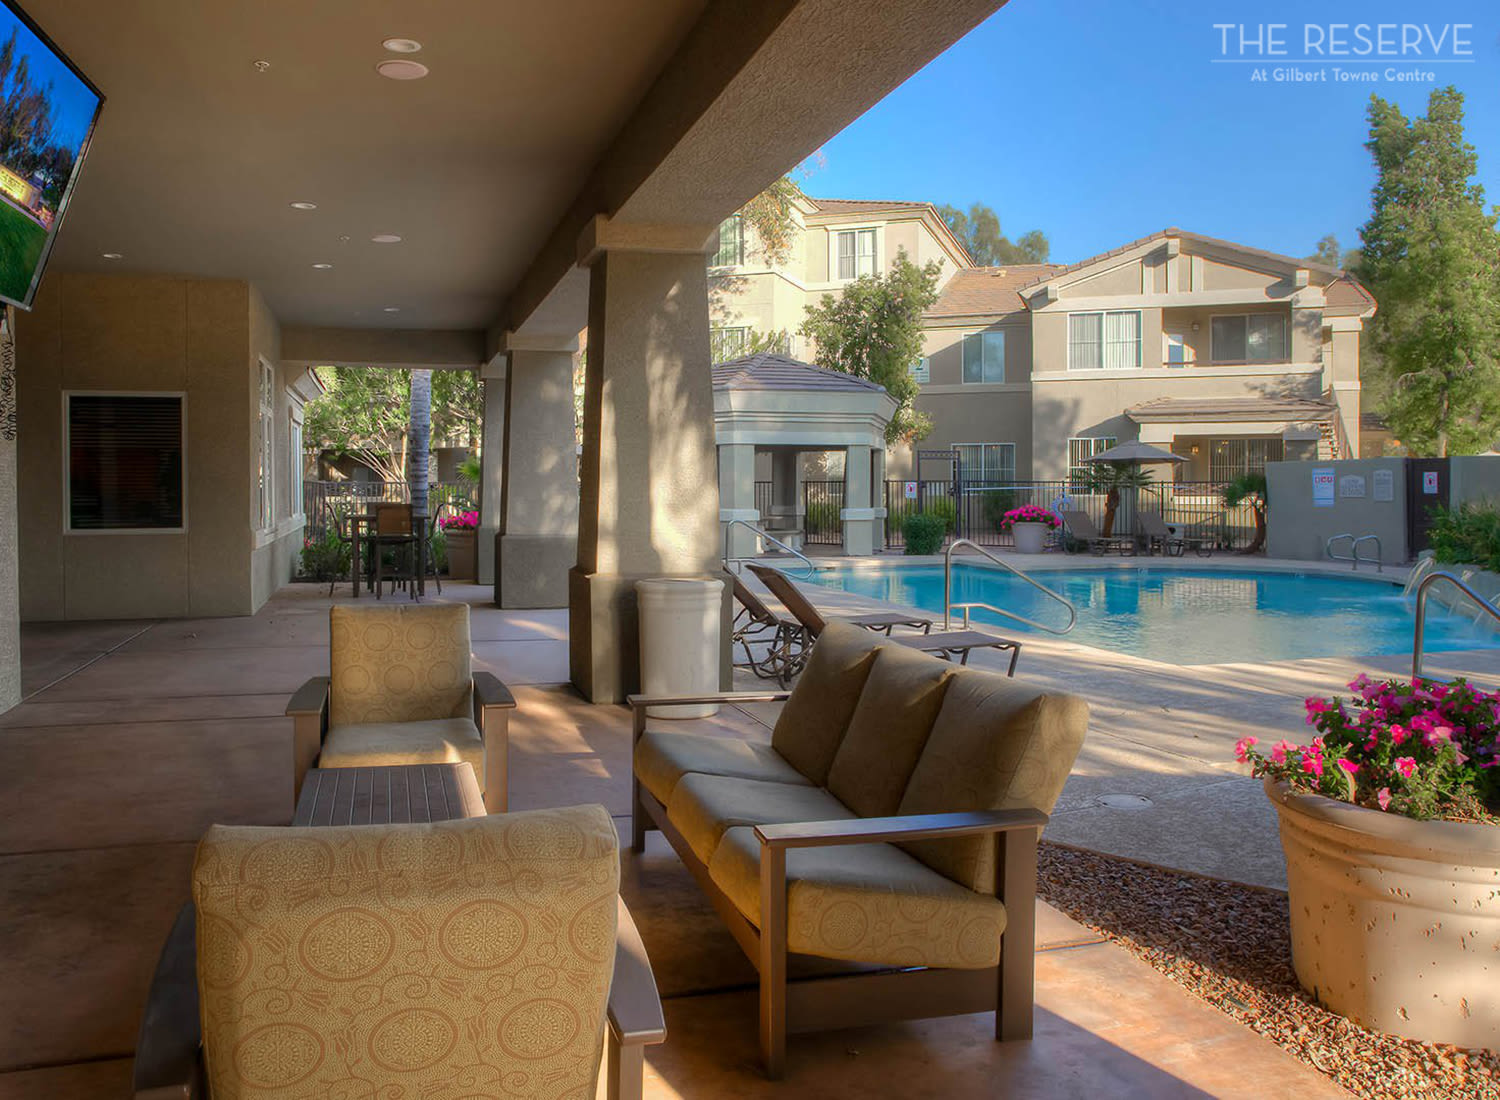 The Reserve at Gilbert Towne Centre apartments in Gilbert, Arizona